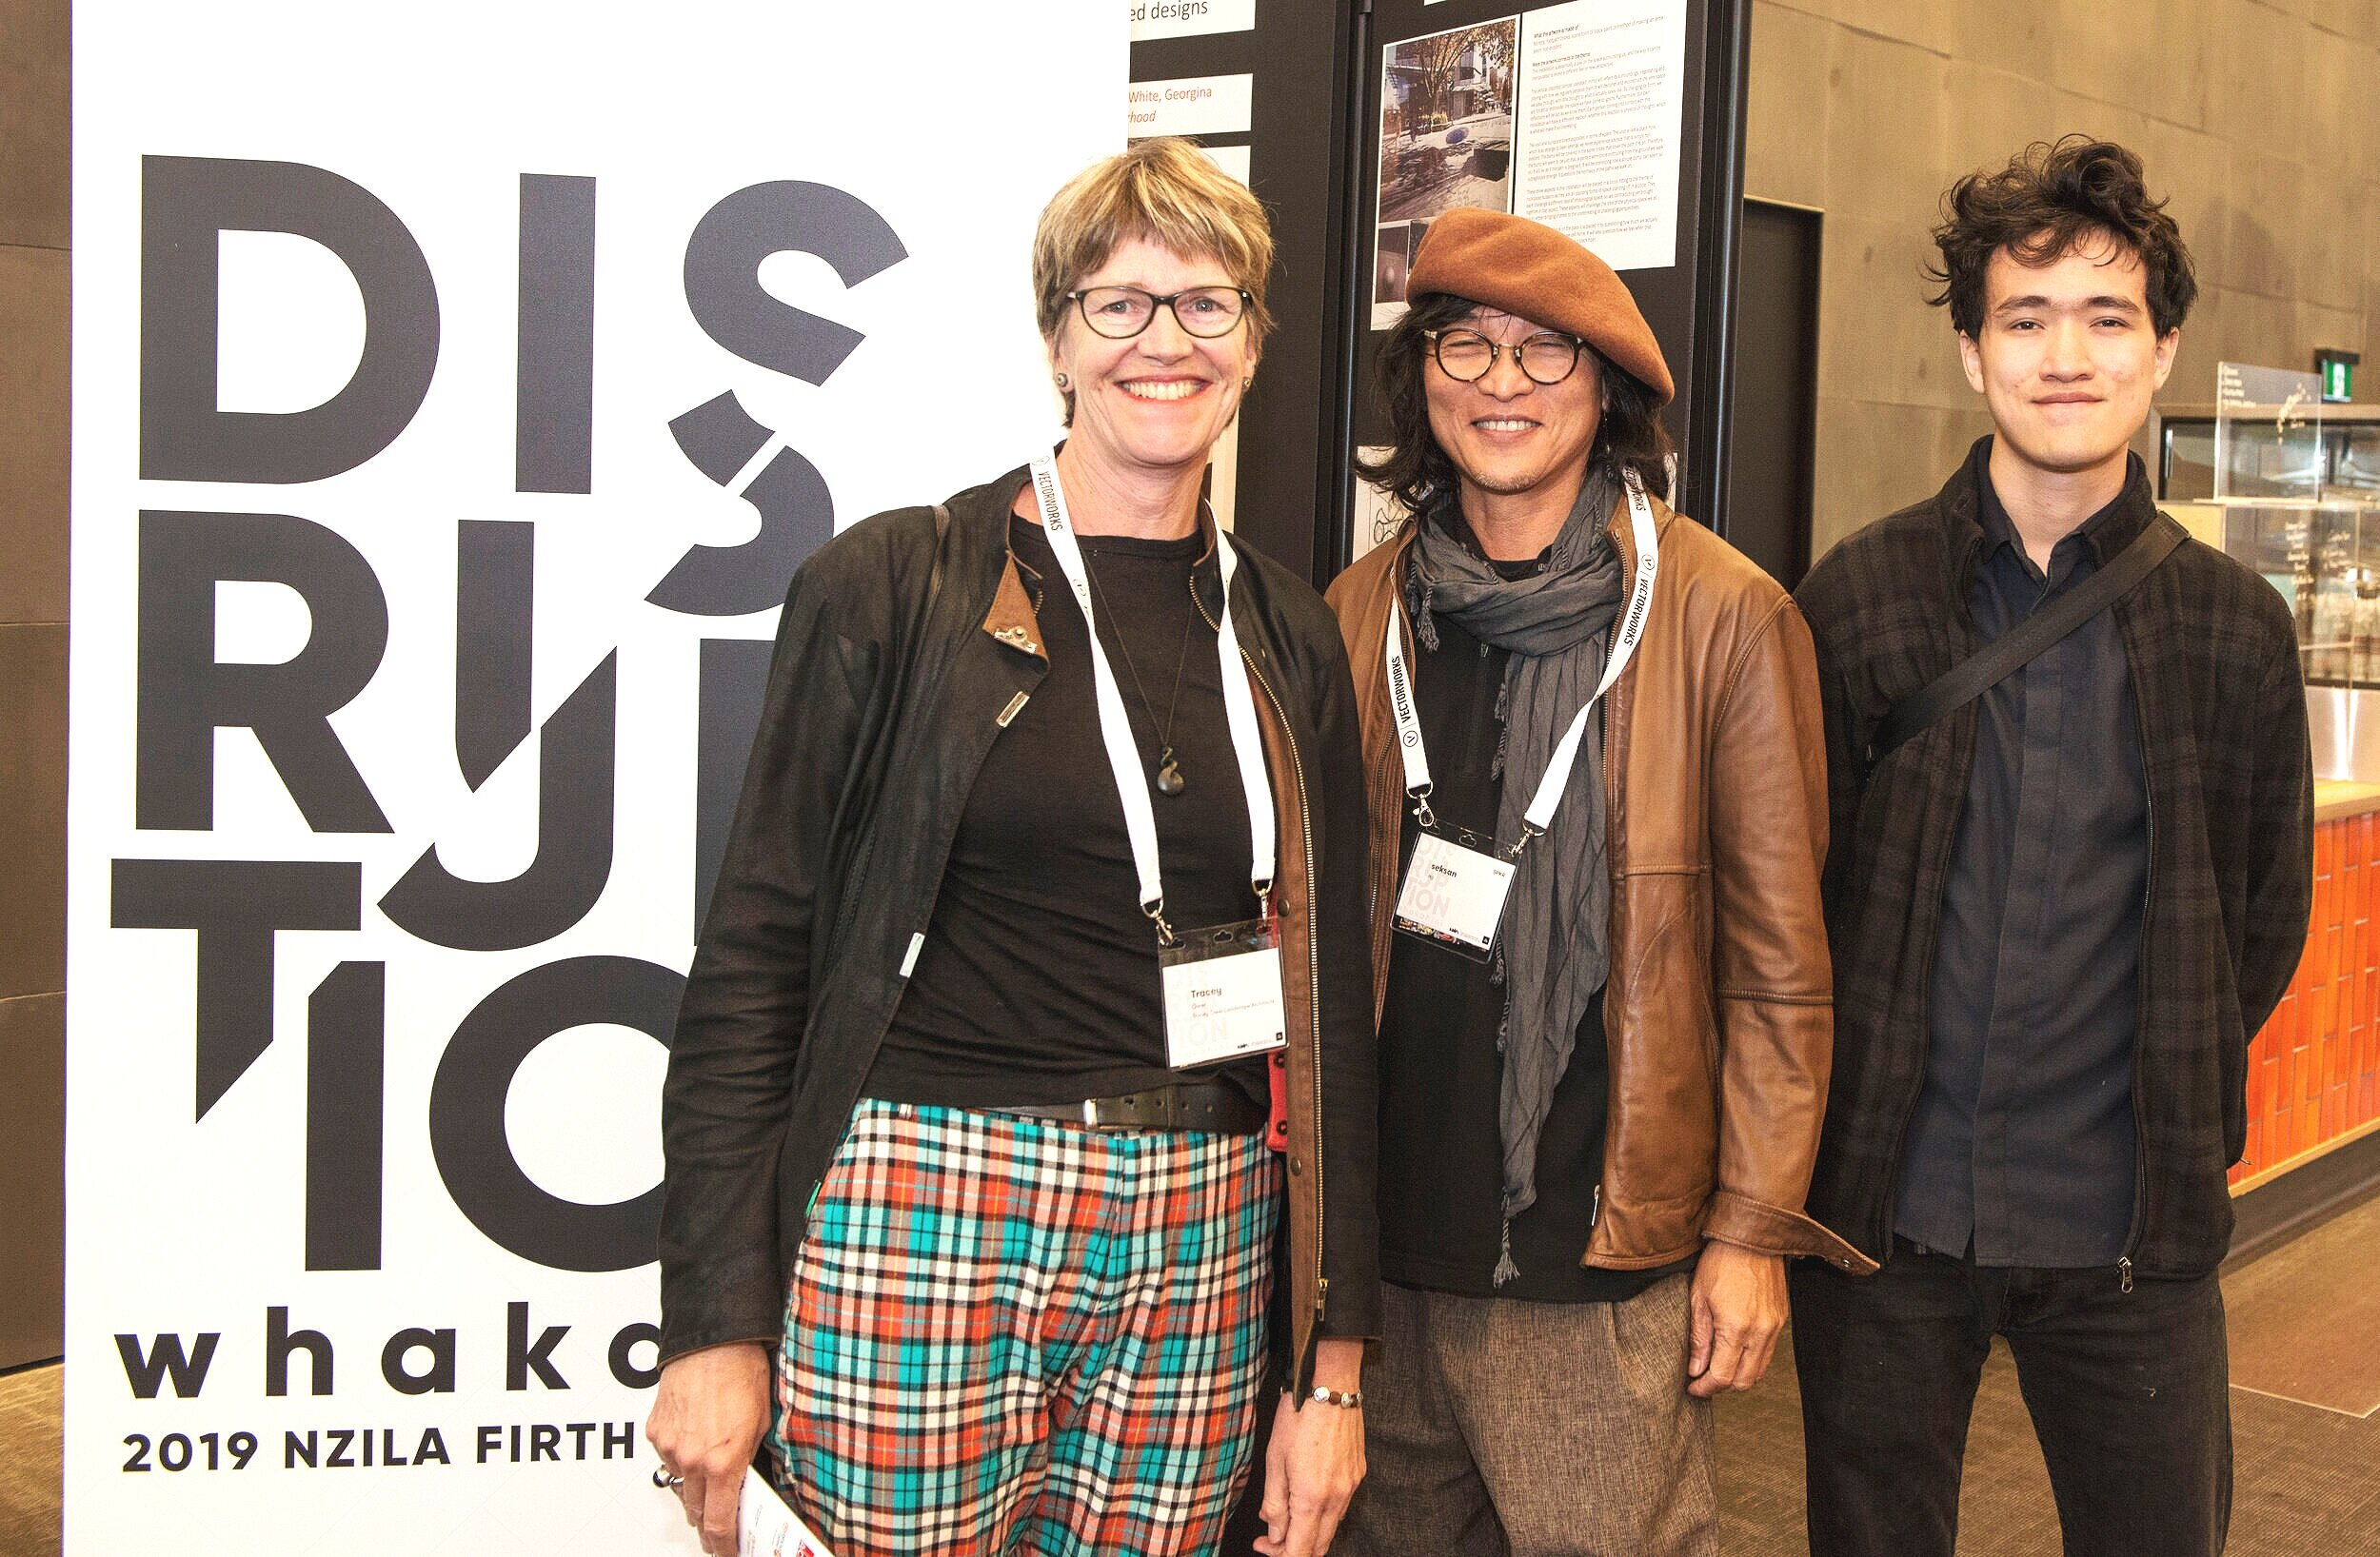 One of the international speakers, Ng Sek San (middle) at the conference opening in Christchurch last night.